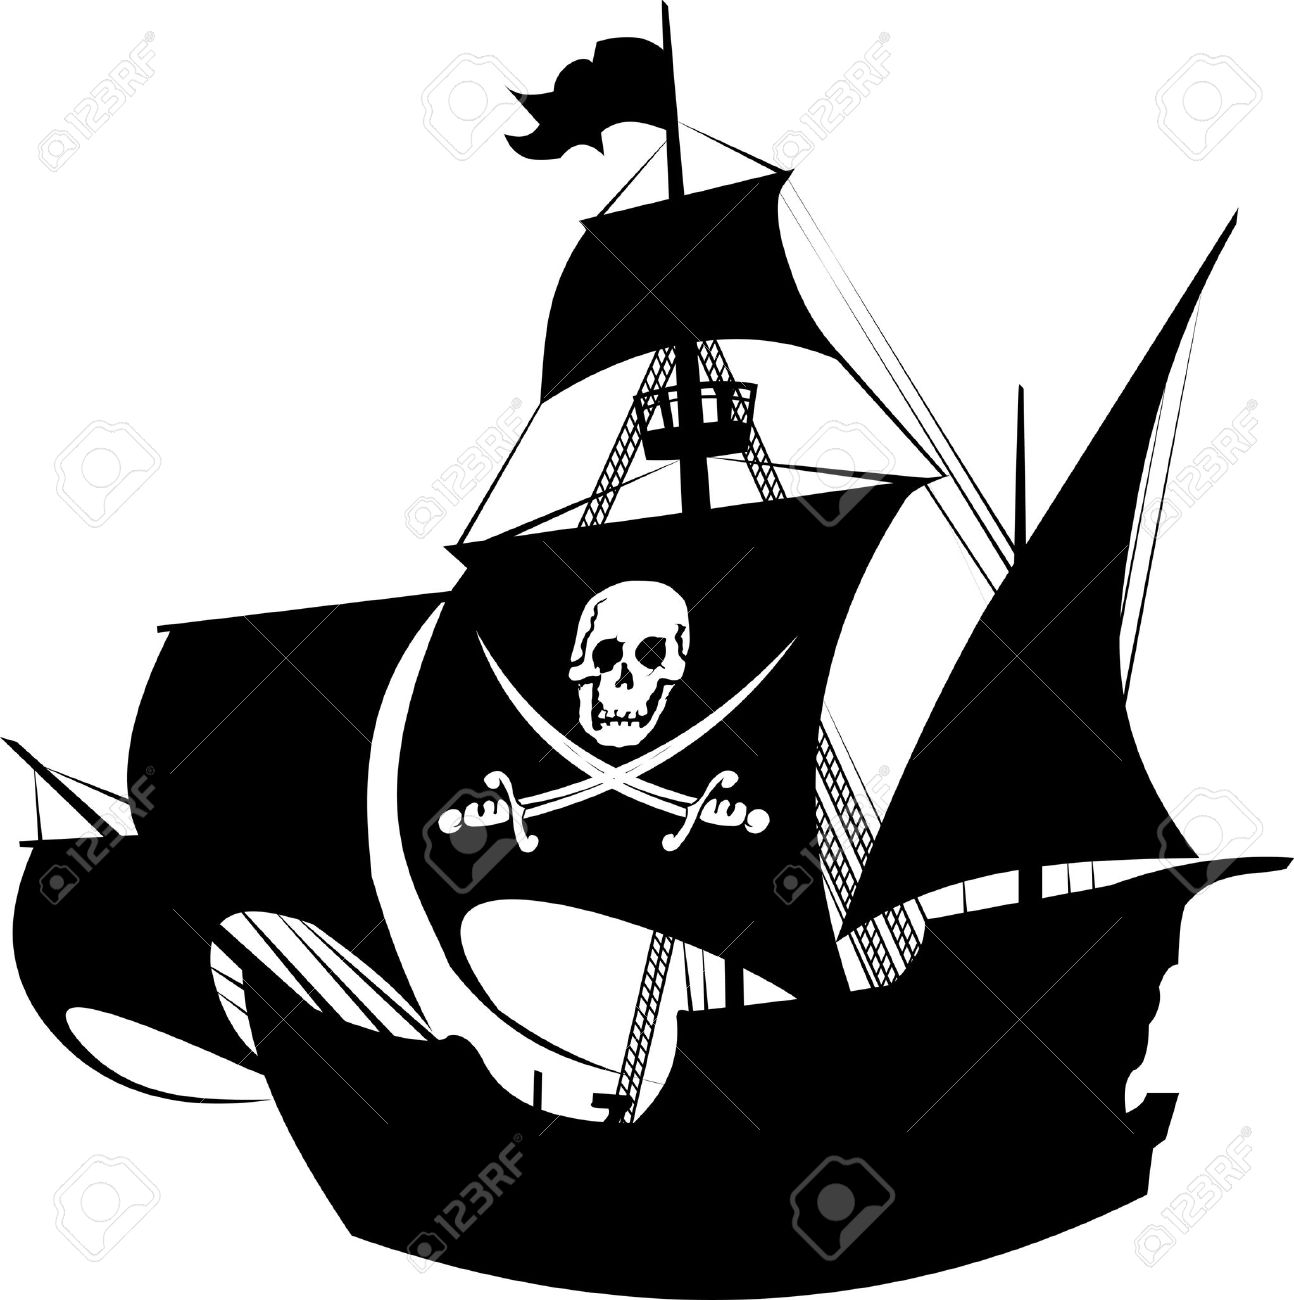 1294x1300 Old Sailing Ships Clipart Silhouette